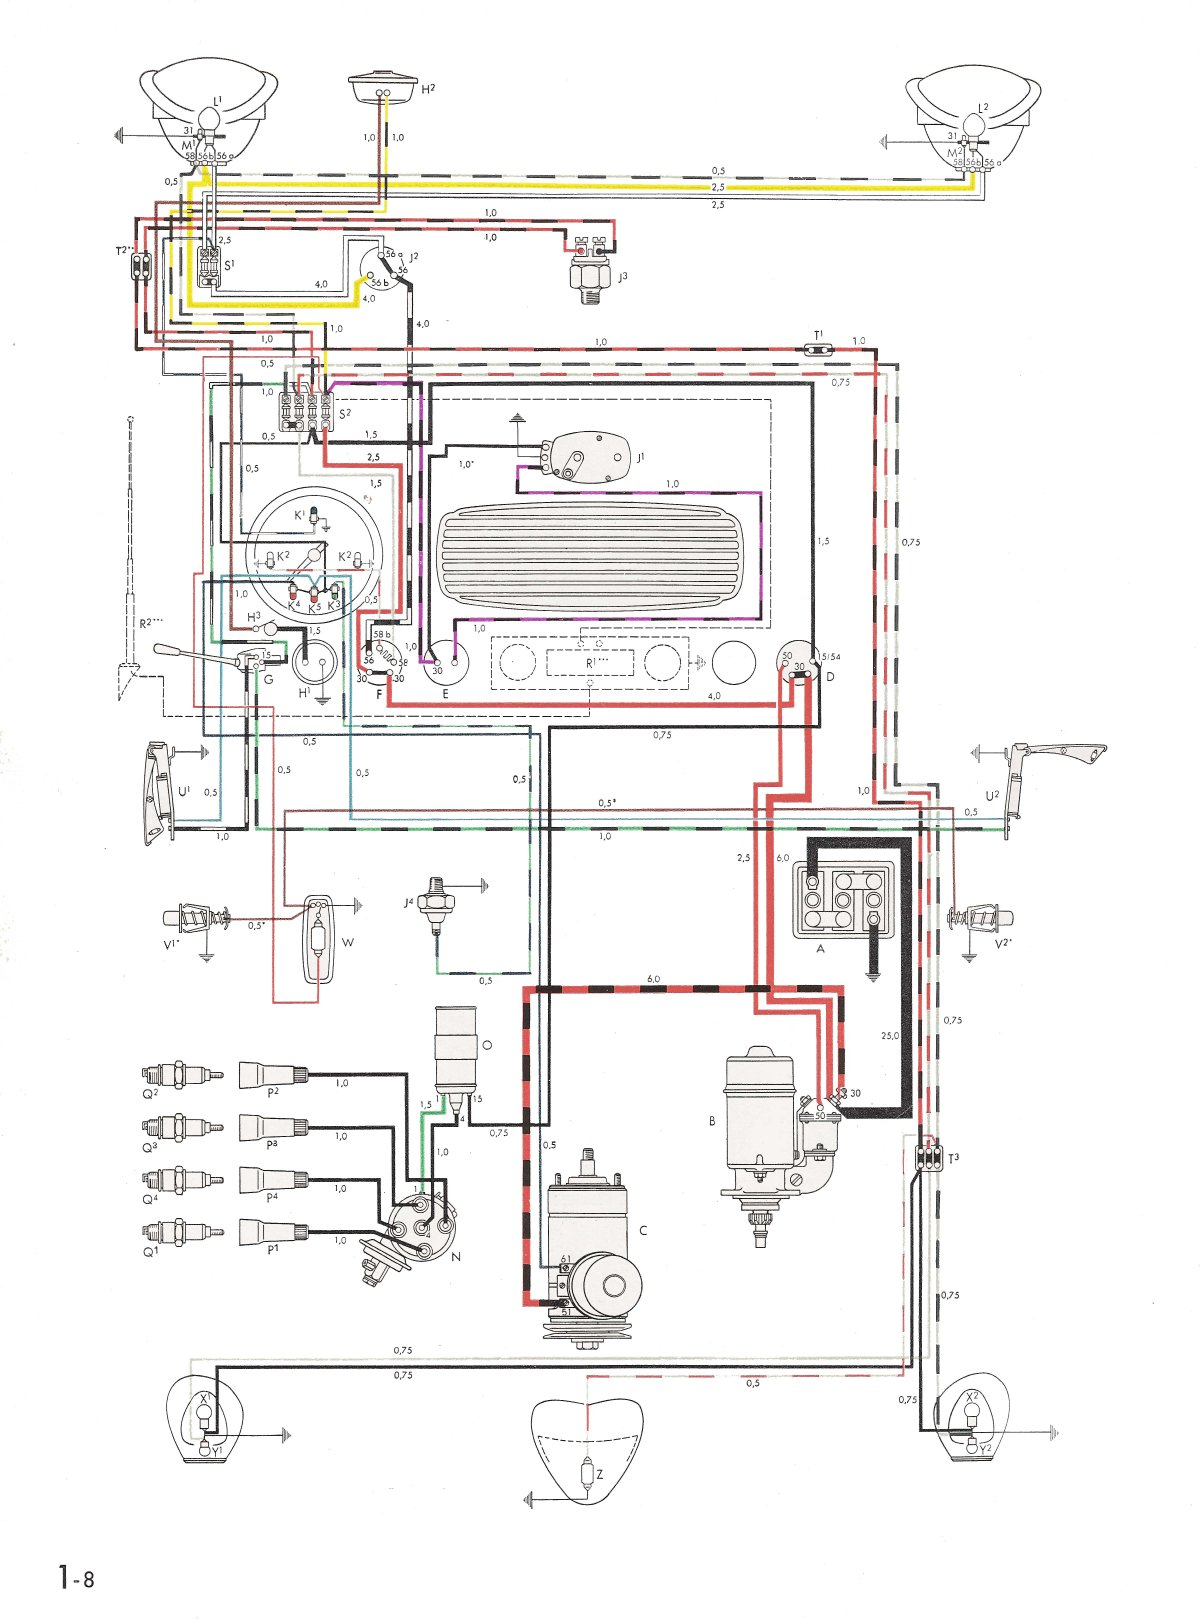 hight resolution of thesamba com type 1 wiring diagrams vw beetle generator wiring diagram vw beetle alternator wiring scematic